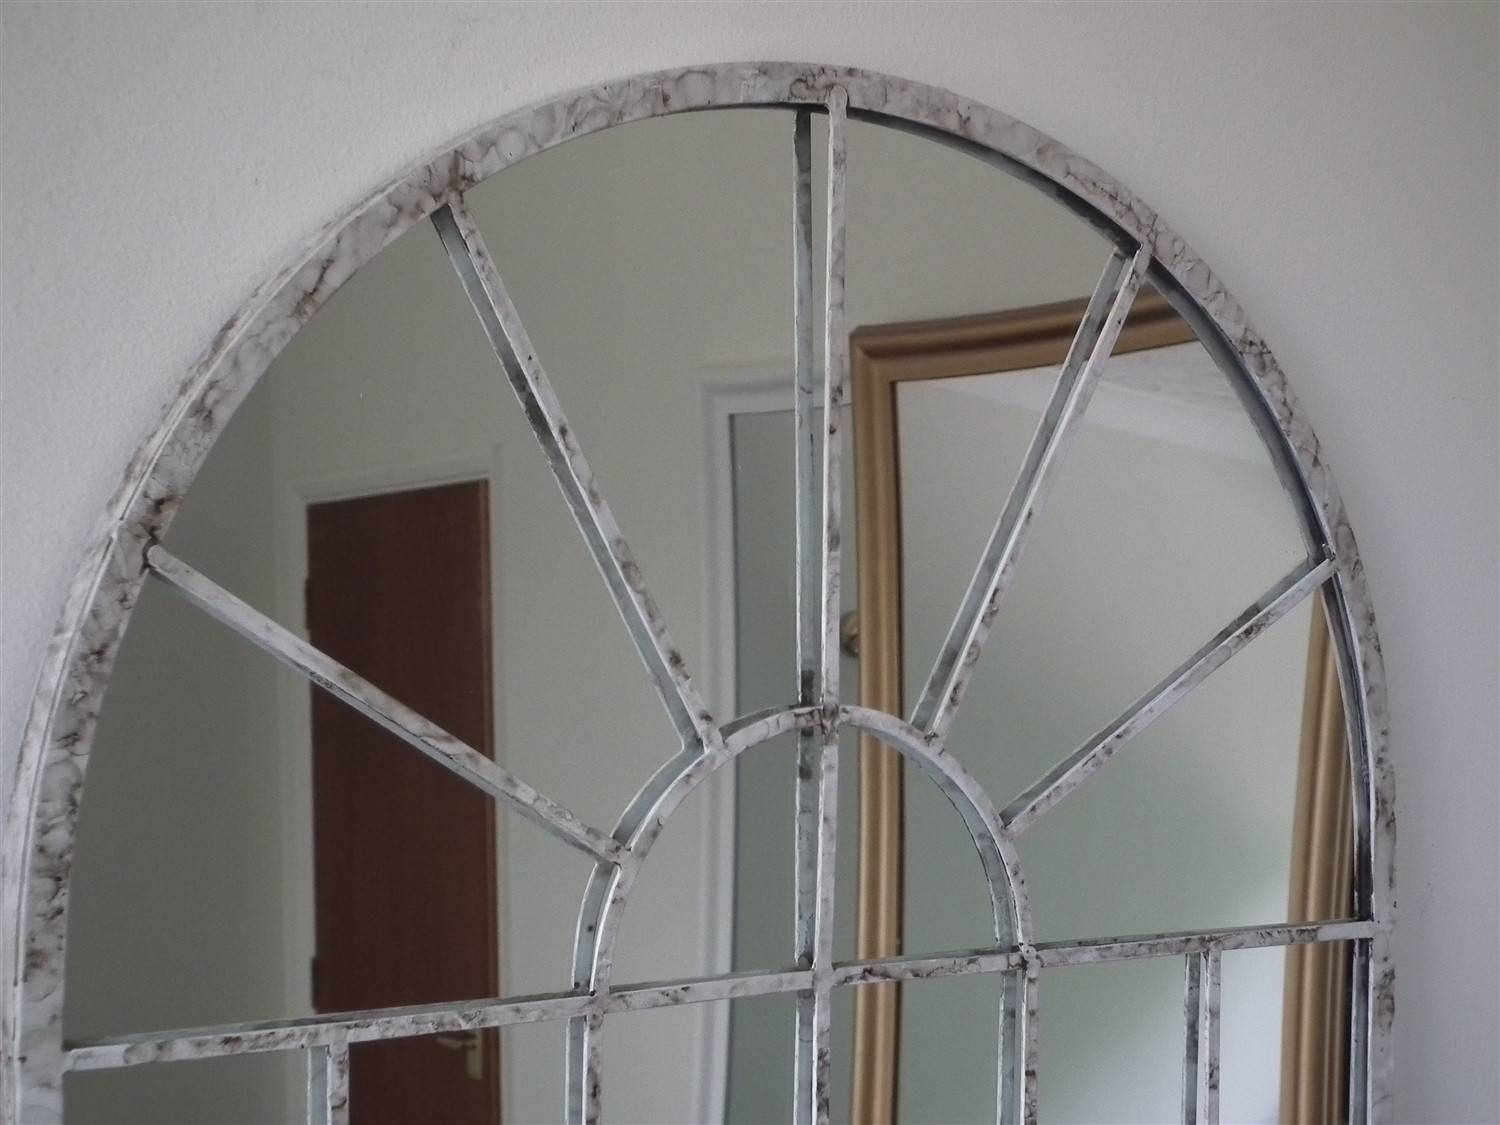 Amiel Large Arch Mirror 5 Awesome Exterior With Metal Arch Mirror pertaining to Metal Garden Mirrors (Image 4 of 15)